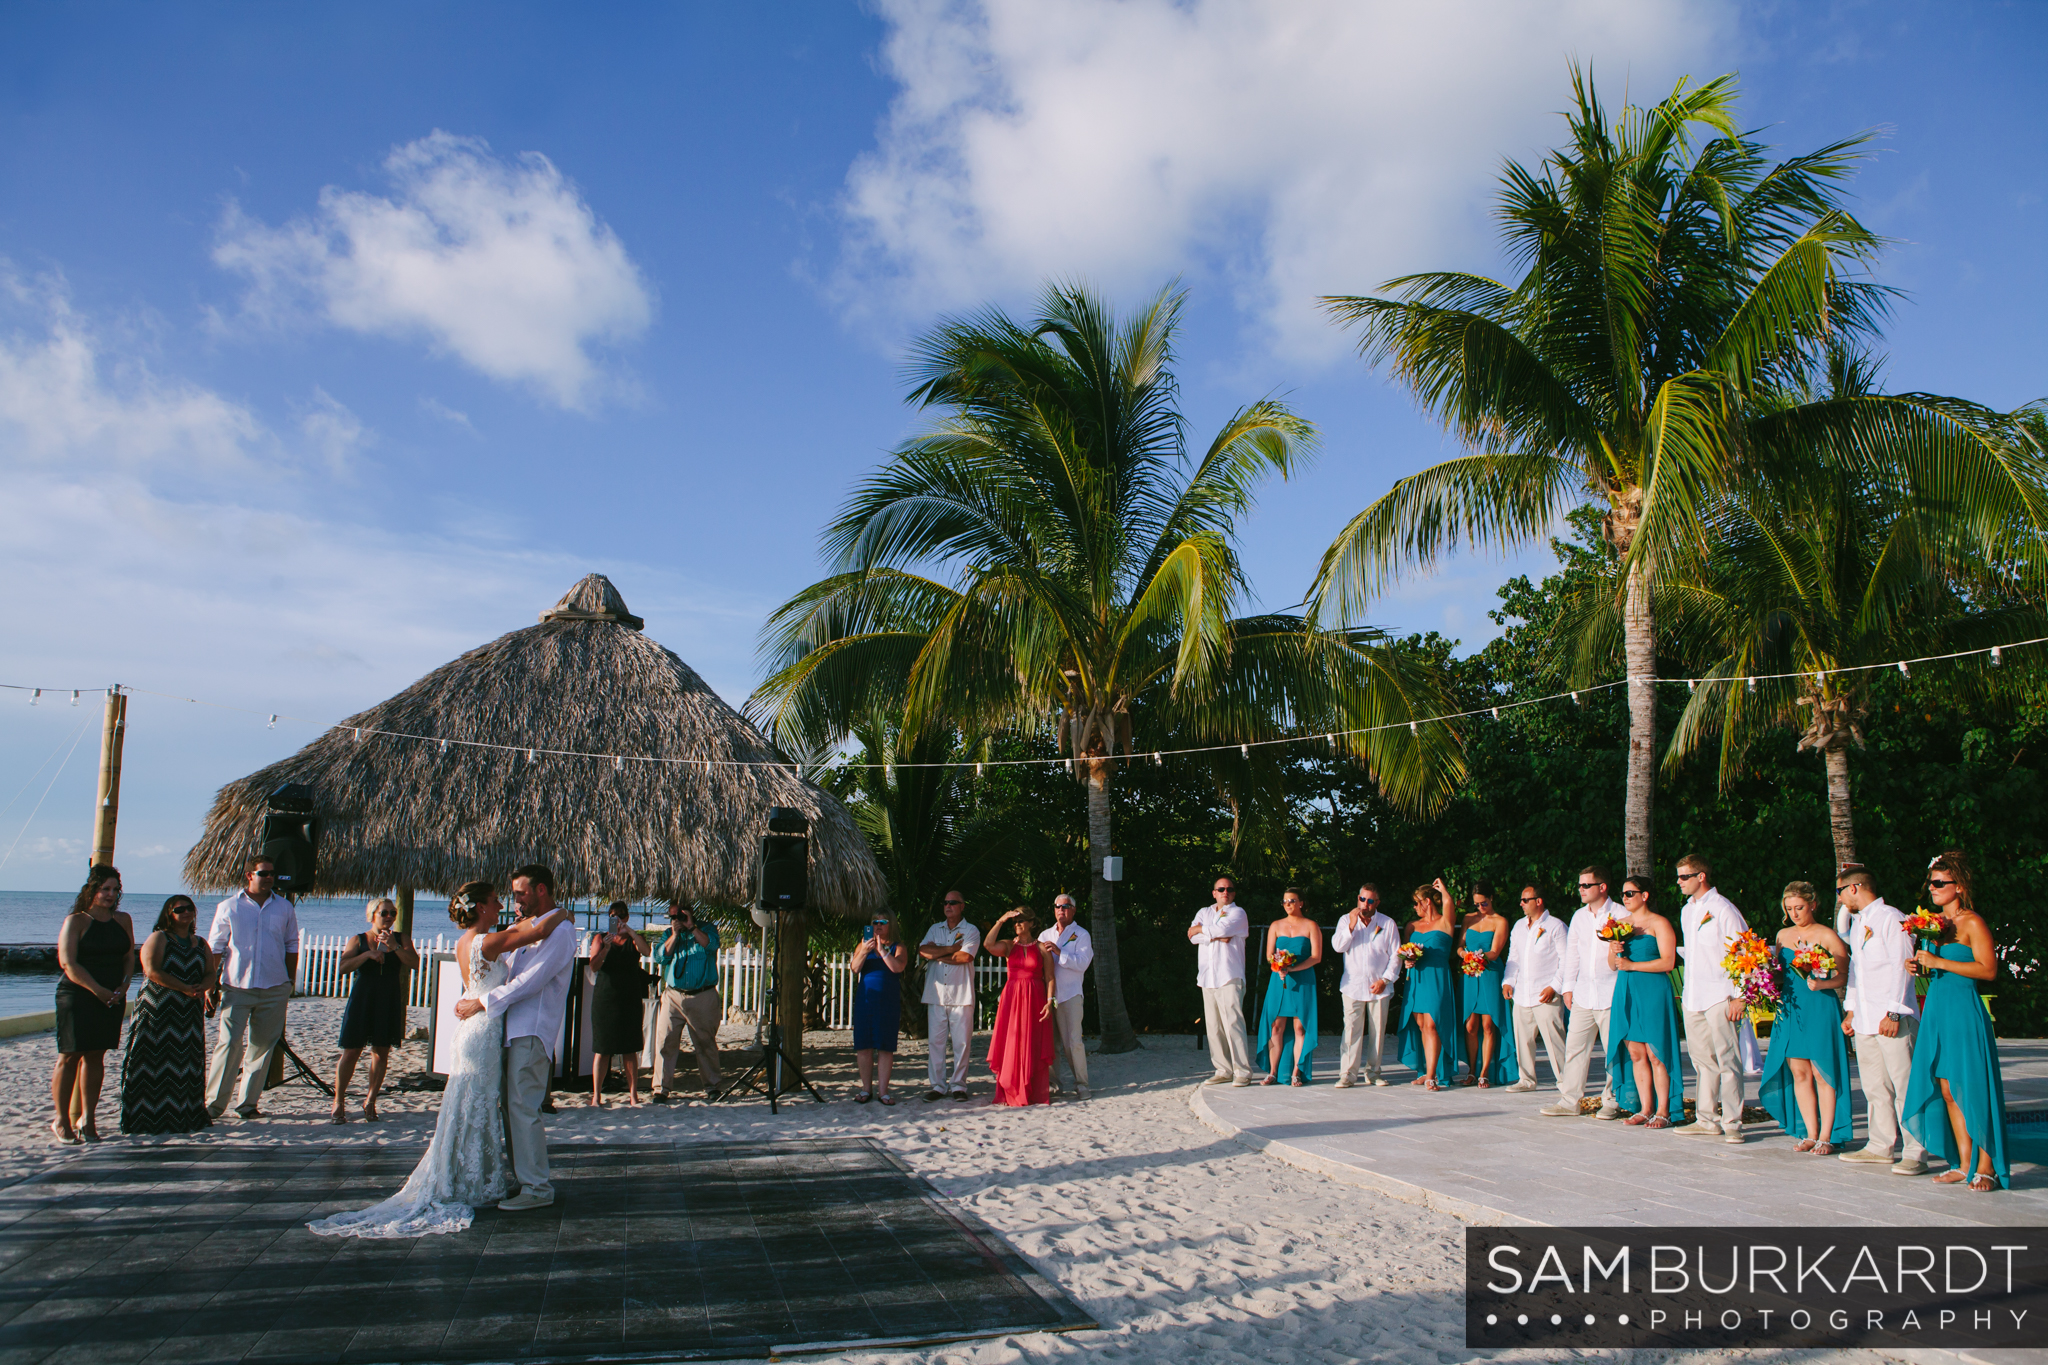 samburkardt_key_west_wedding_marathon_florida_summer_beach_ocean_front_0052.jpg